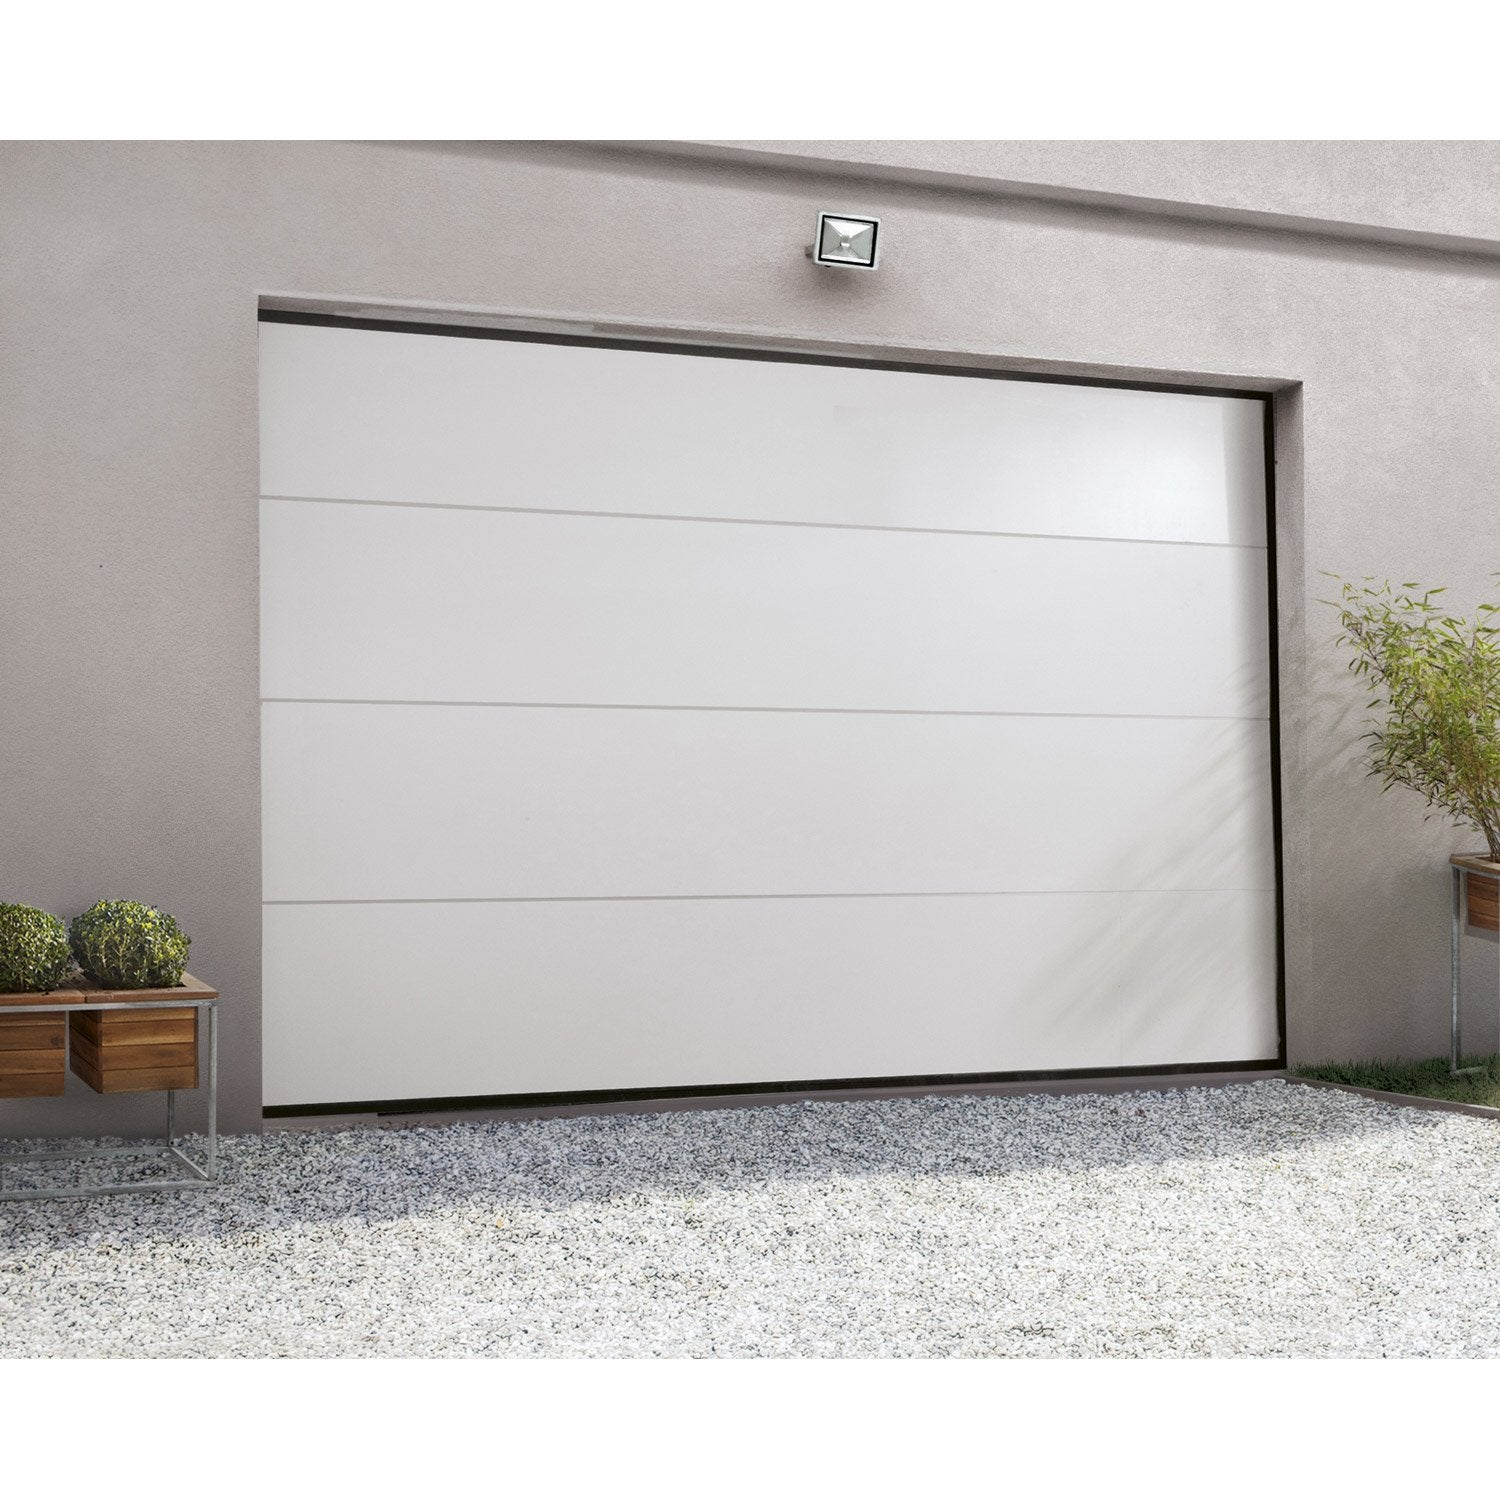 Porte de garage sectionnelle motoris e artens essentiel h for Porte de garage enroulable isolante